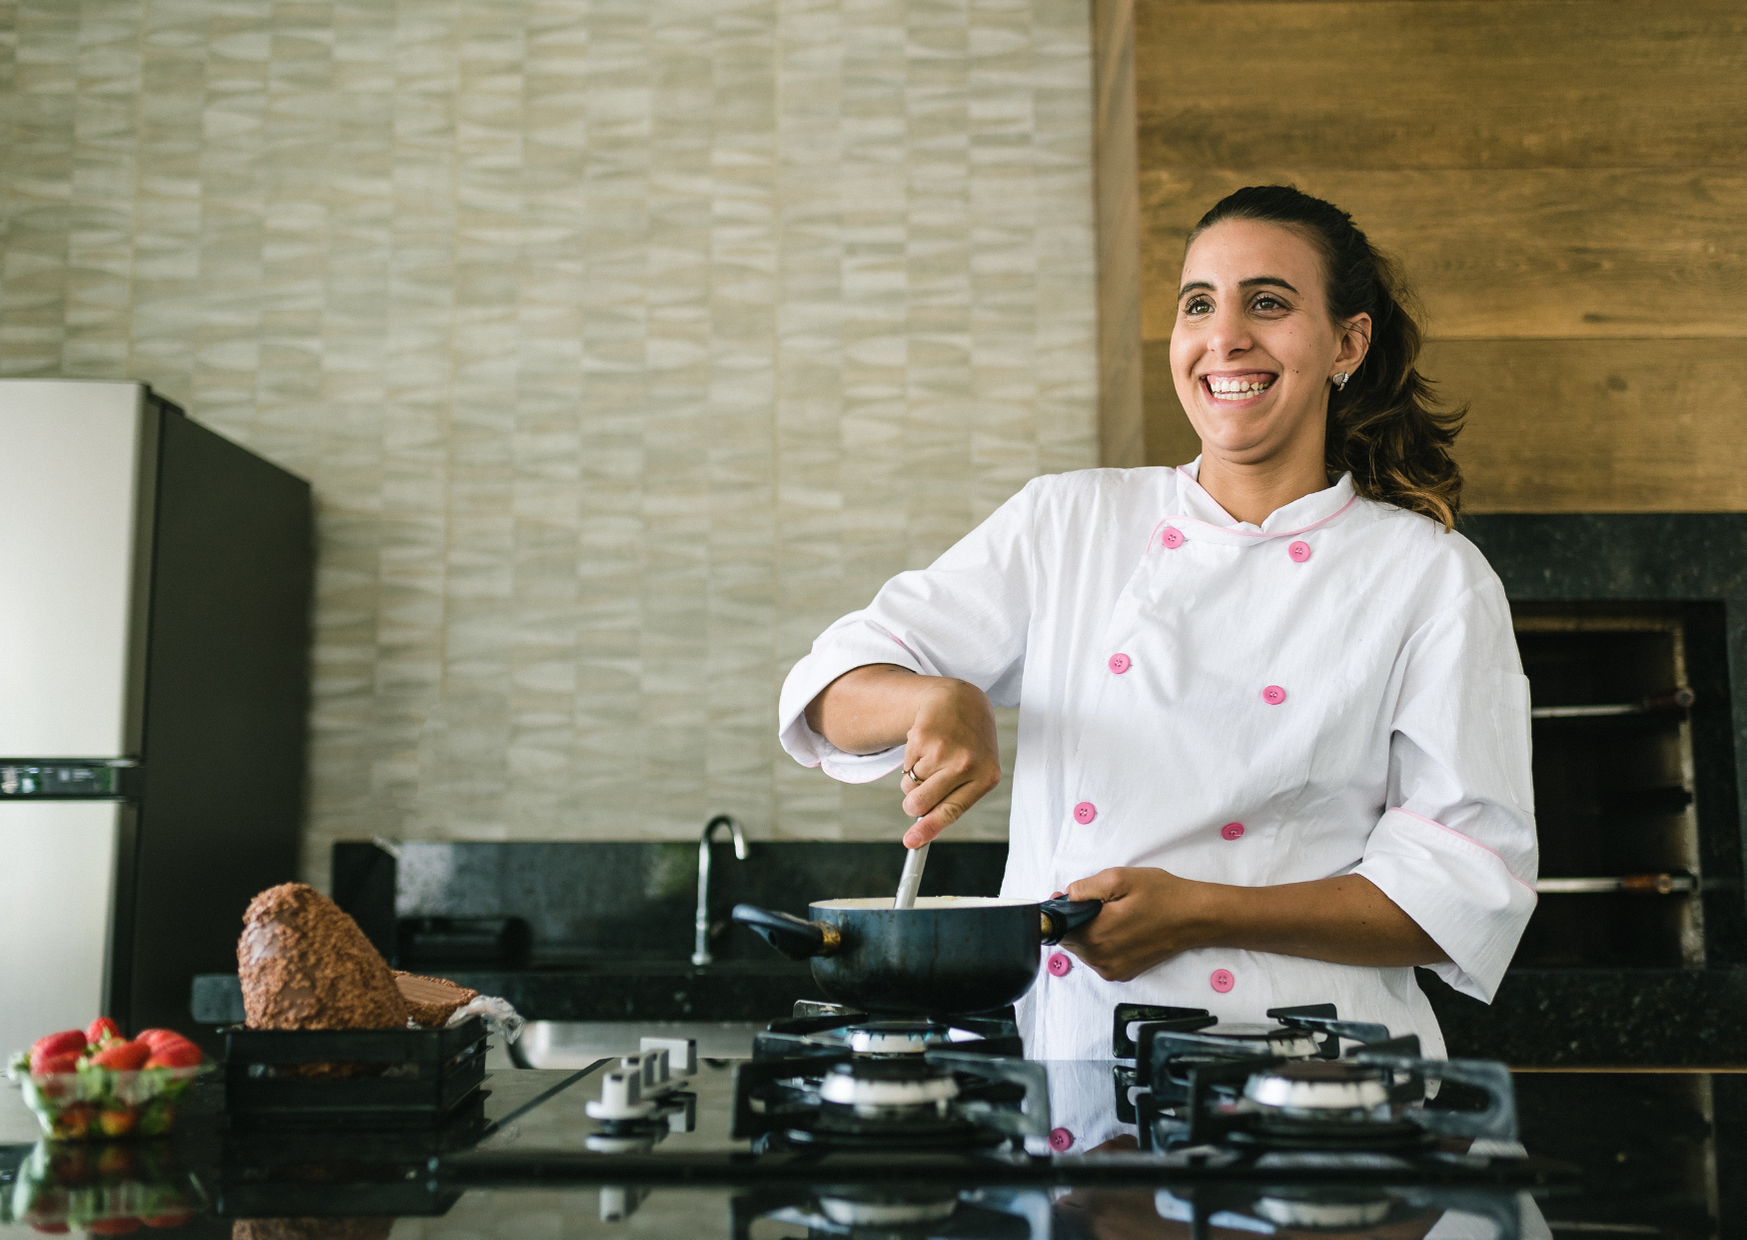 a chef smiling while cooking